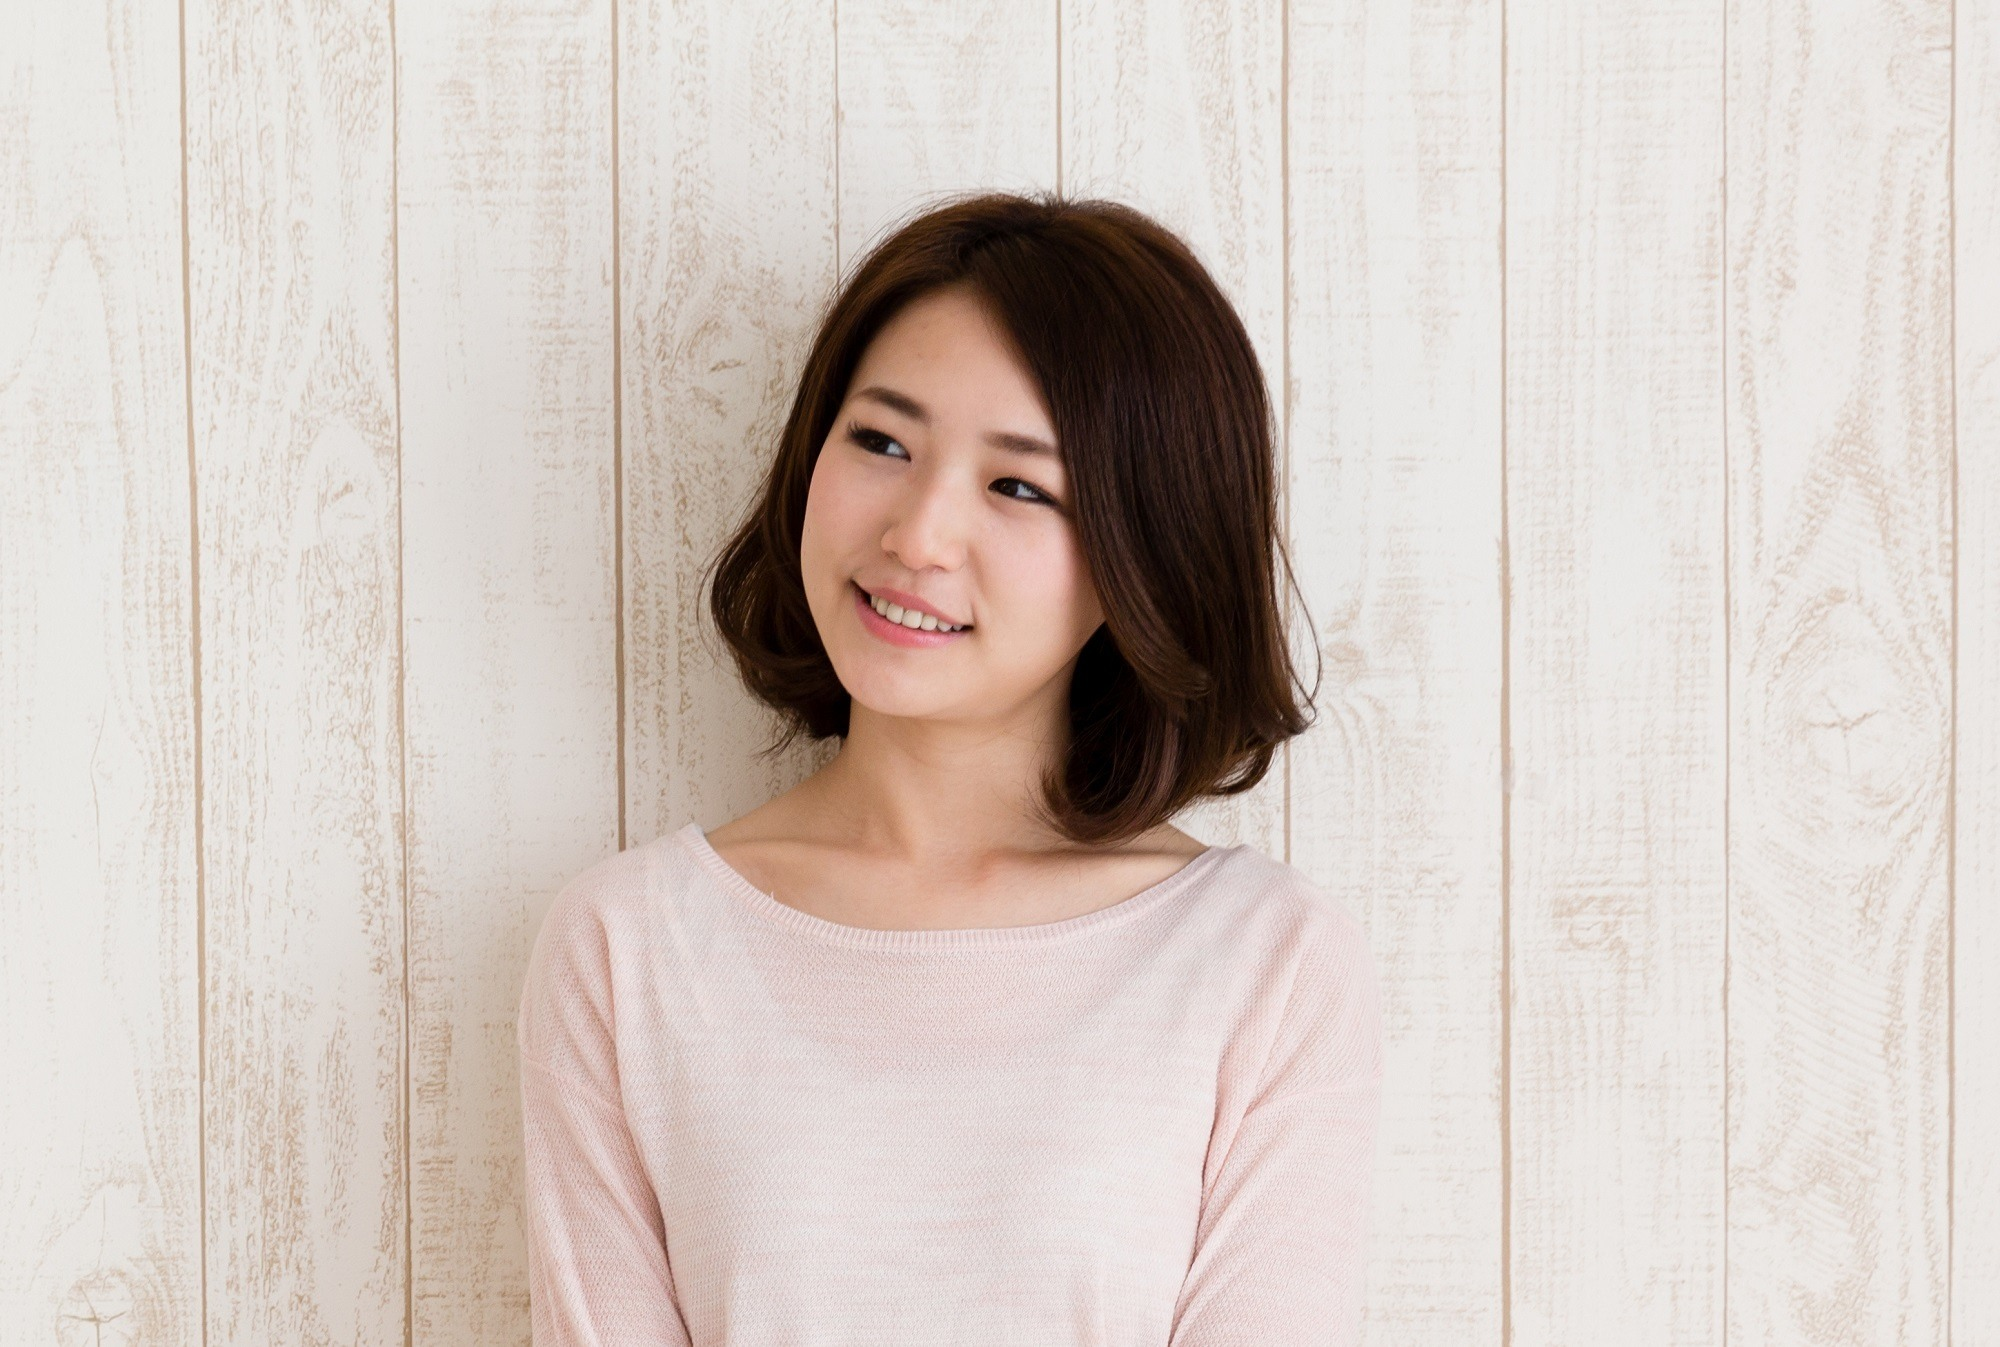 Best haircuts for different face shapes: Closeup shot of an Asian woman with dark lob wearing a light pink sweater